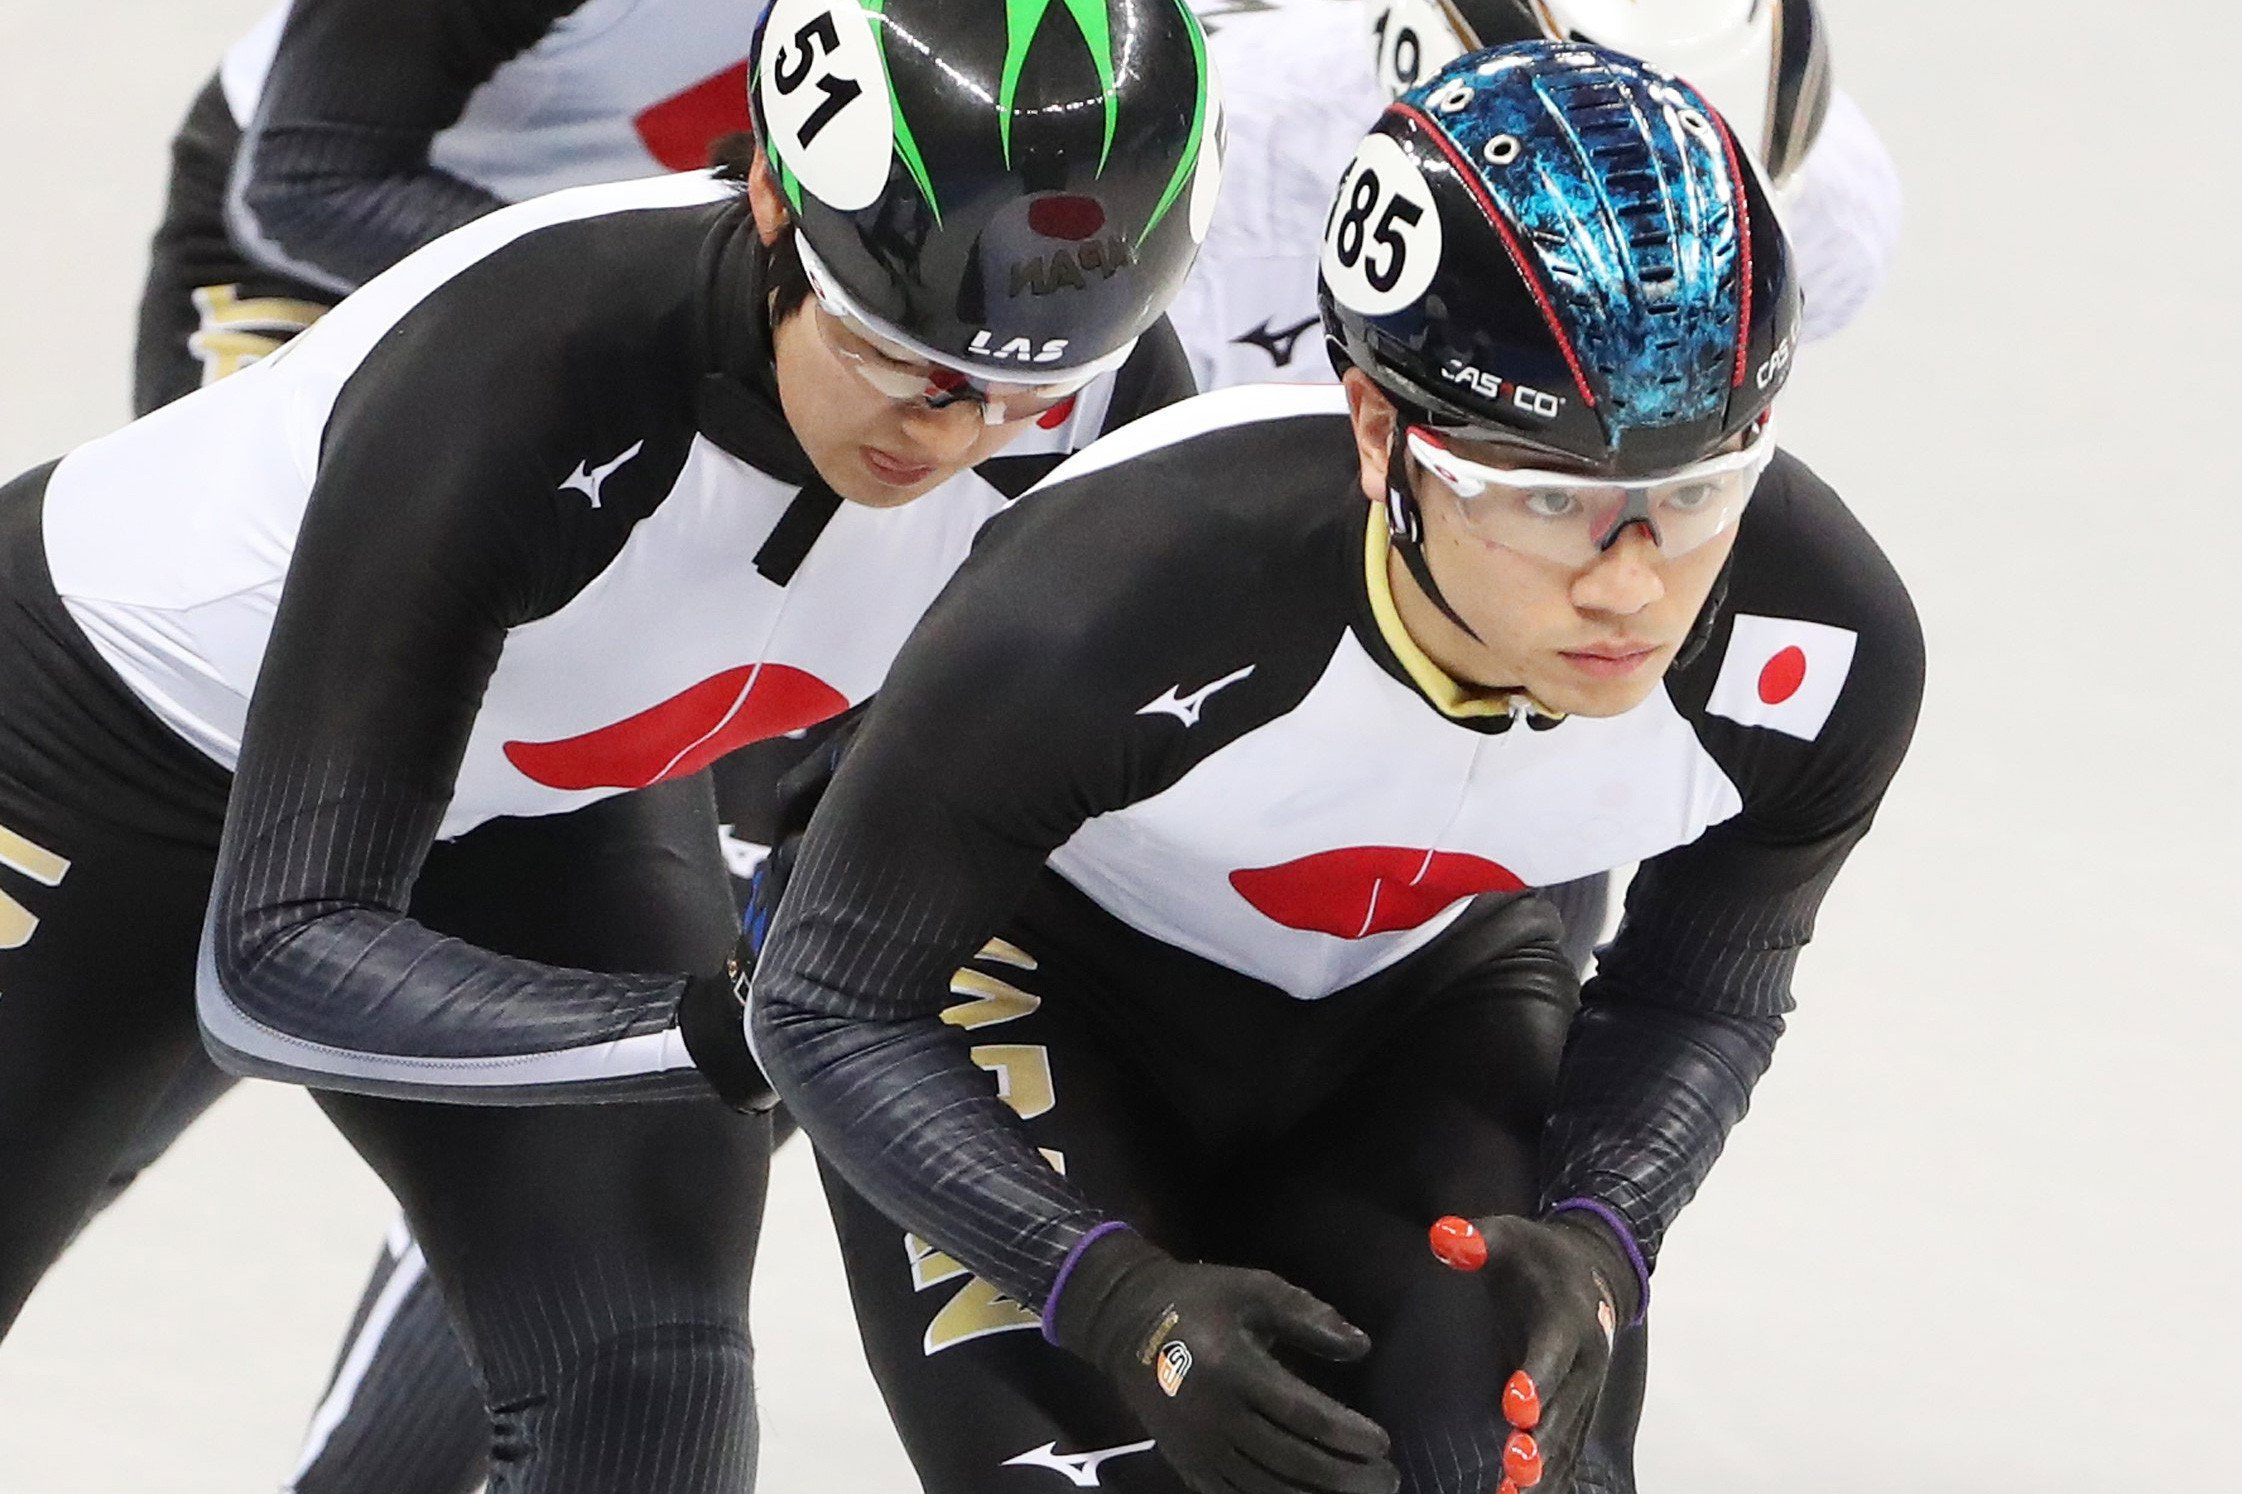 Japanese Olympic speed skater suspended for doping